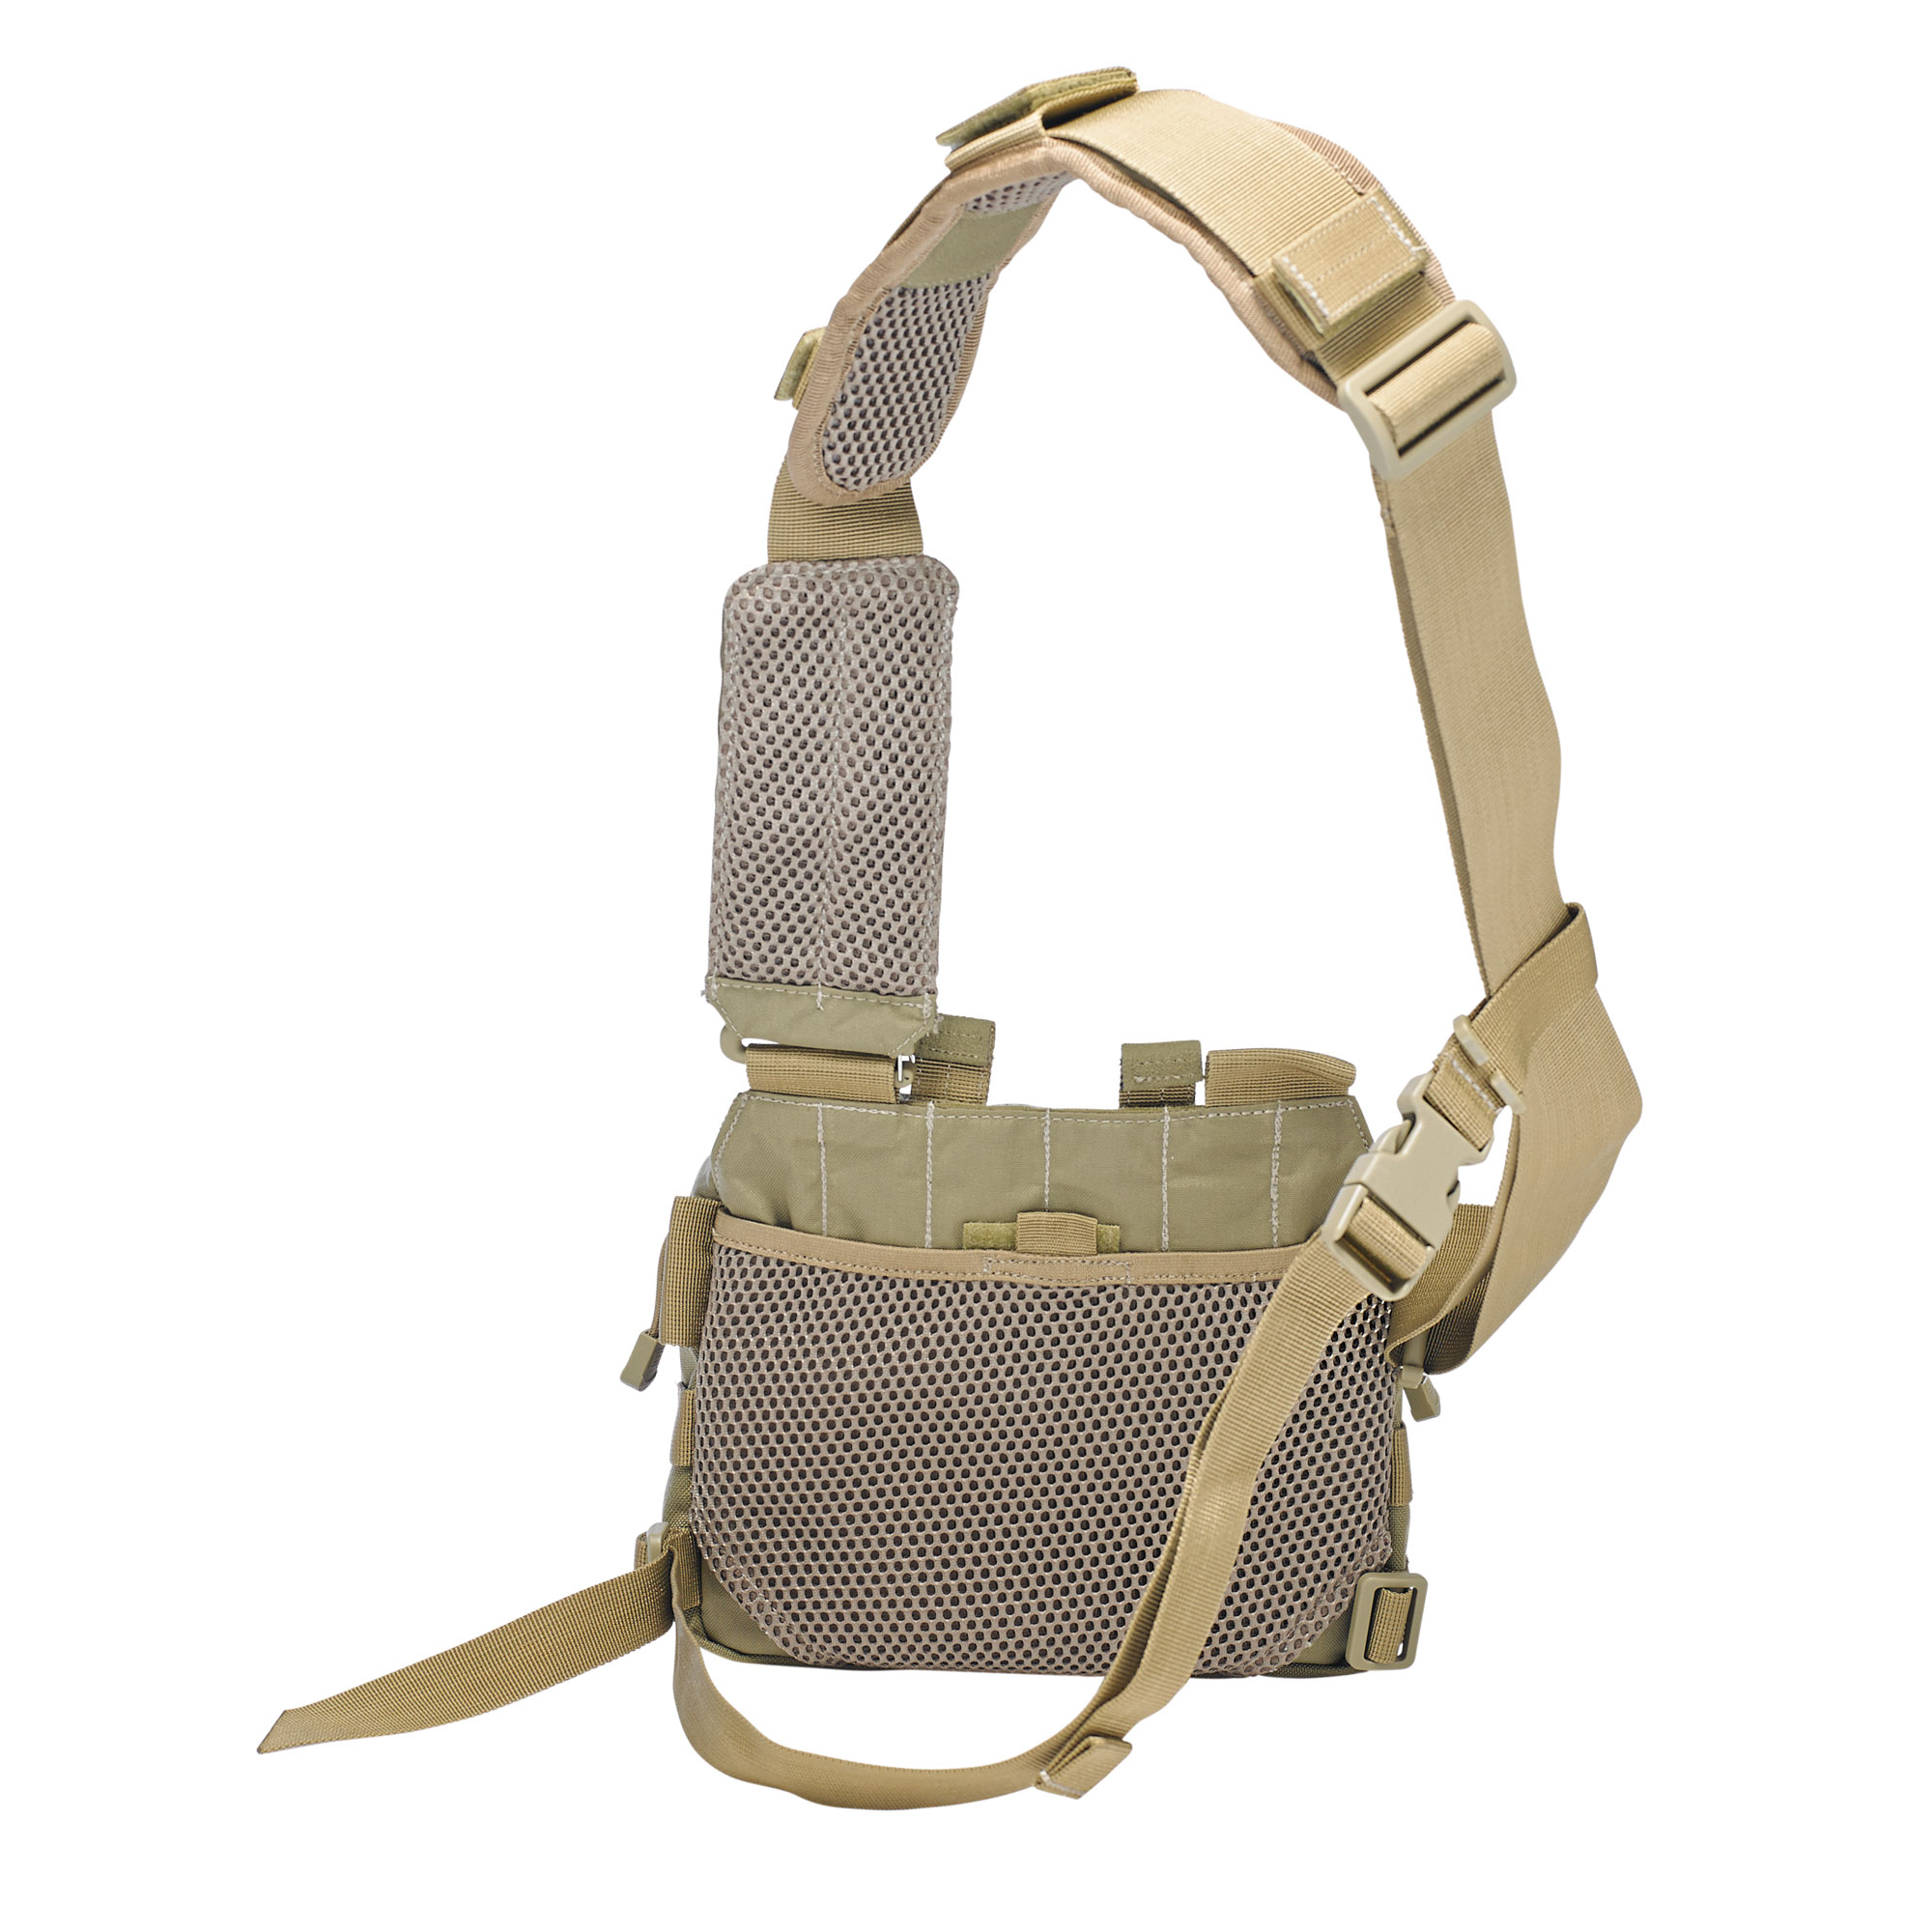 5.11-tactical-2-banger-bag-1.jpg